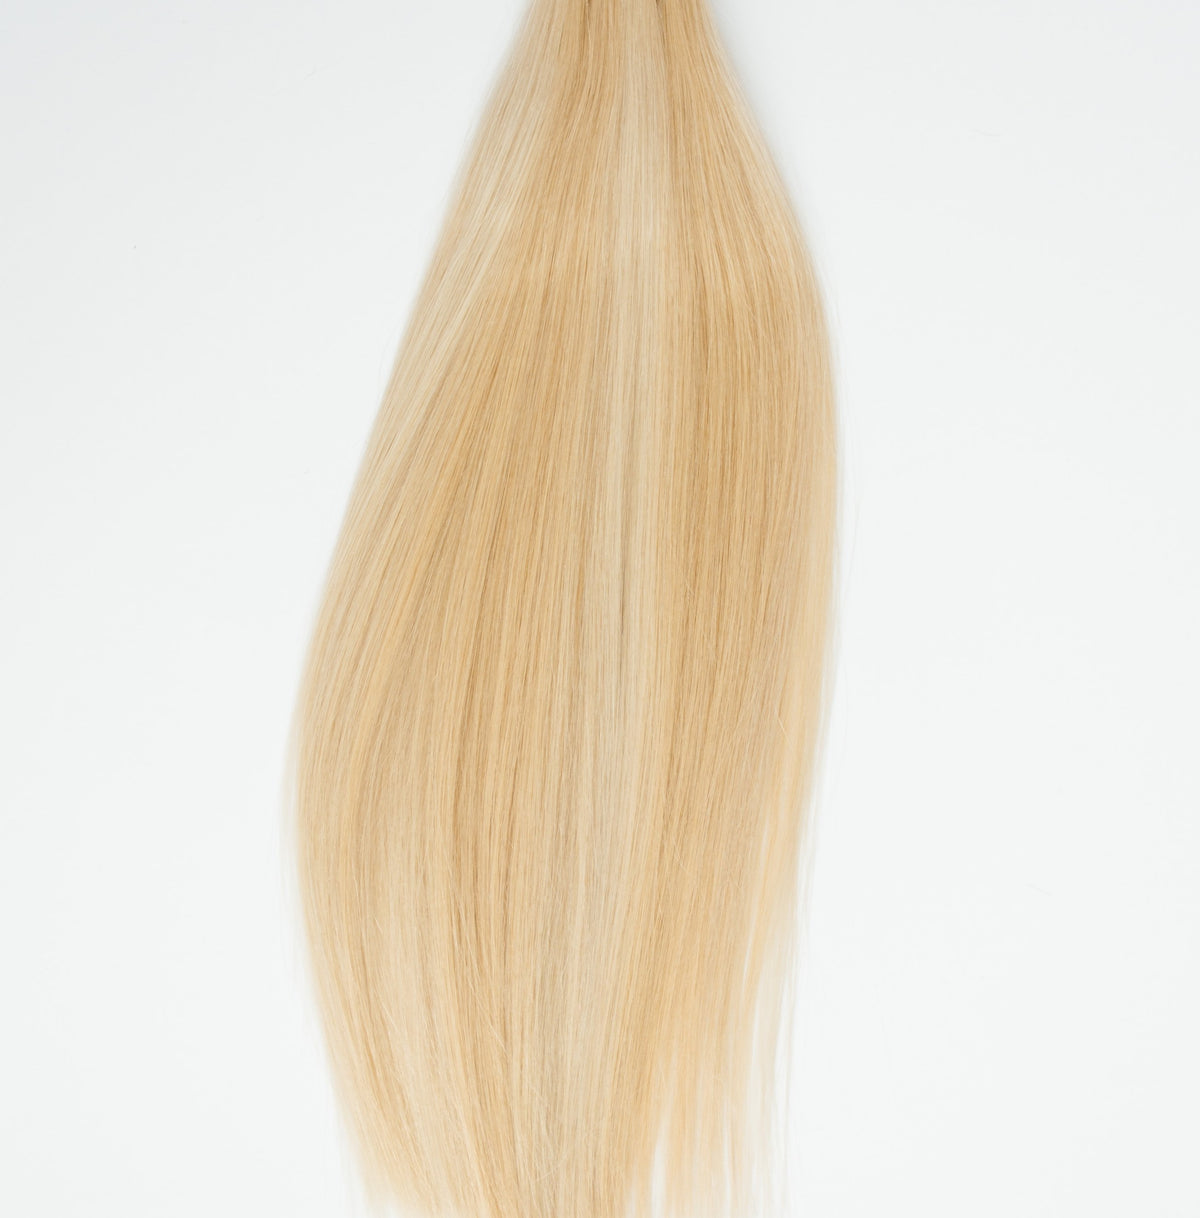 Keratin - Laced Hair Keratin Bond Extensions Dimensional #16/22 (Buttercream)